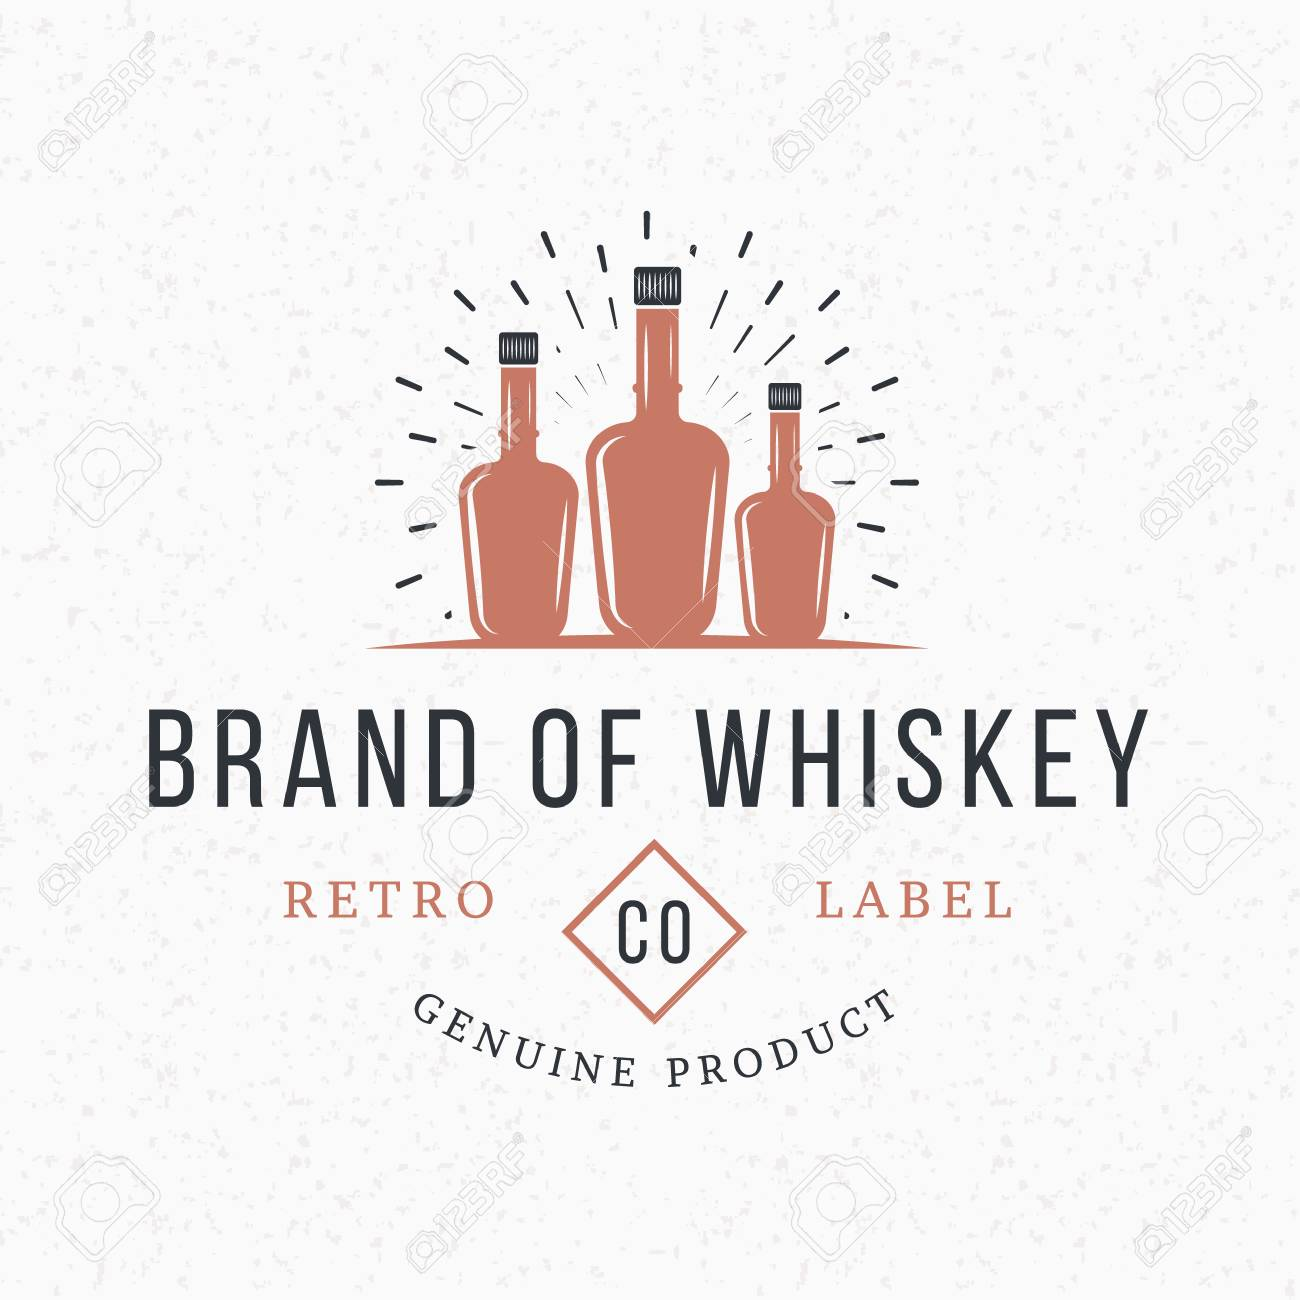 whiskey bottles. vintage retro design elements for logotype